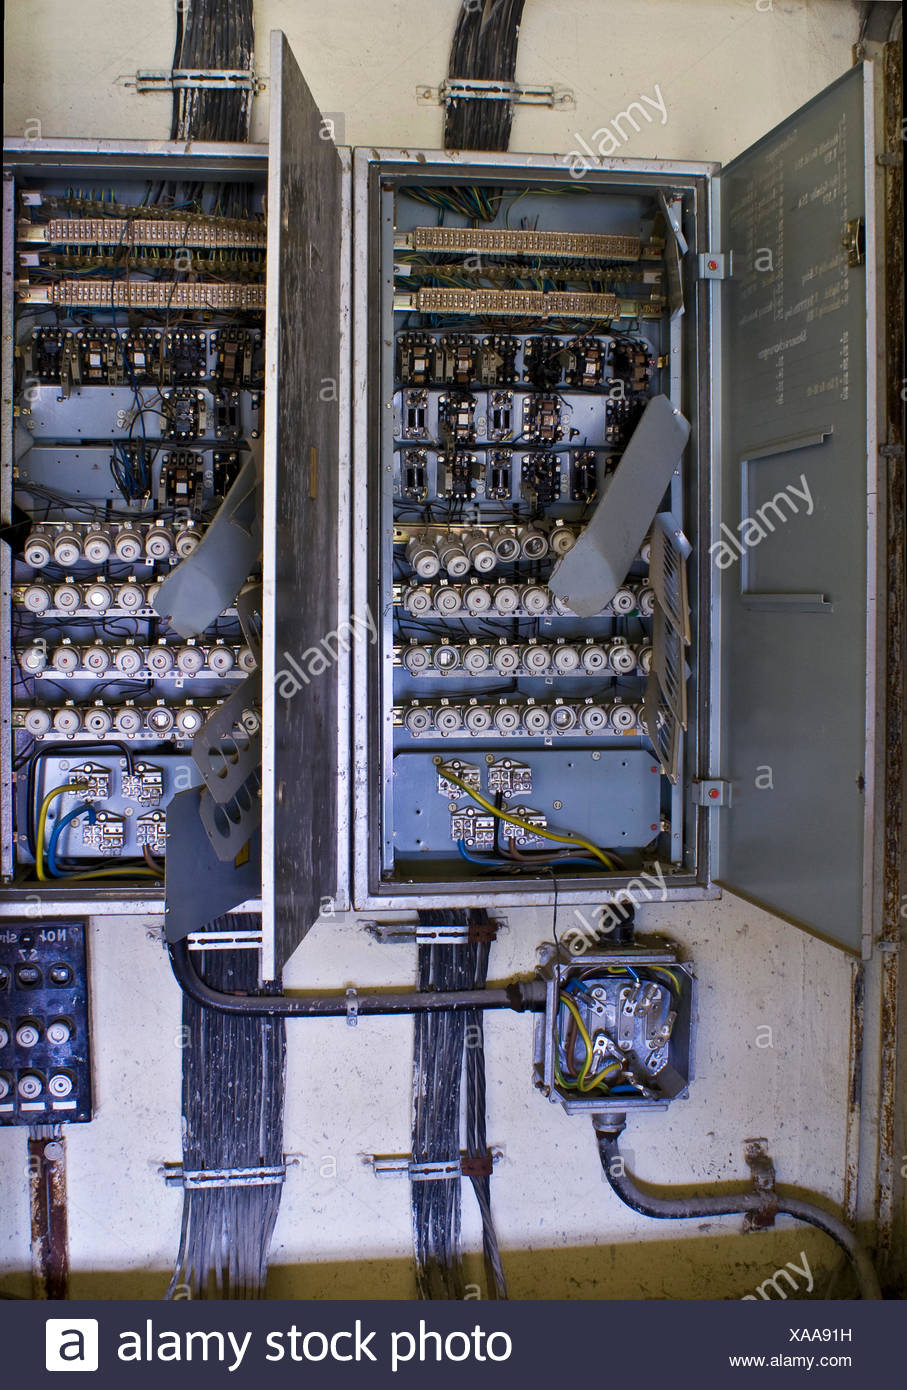 switchboard fuse box energy power electricity electric power ailing defect